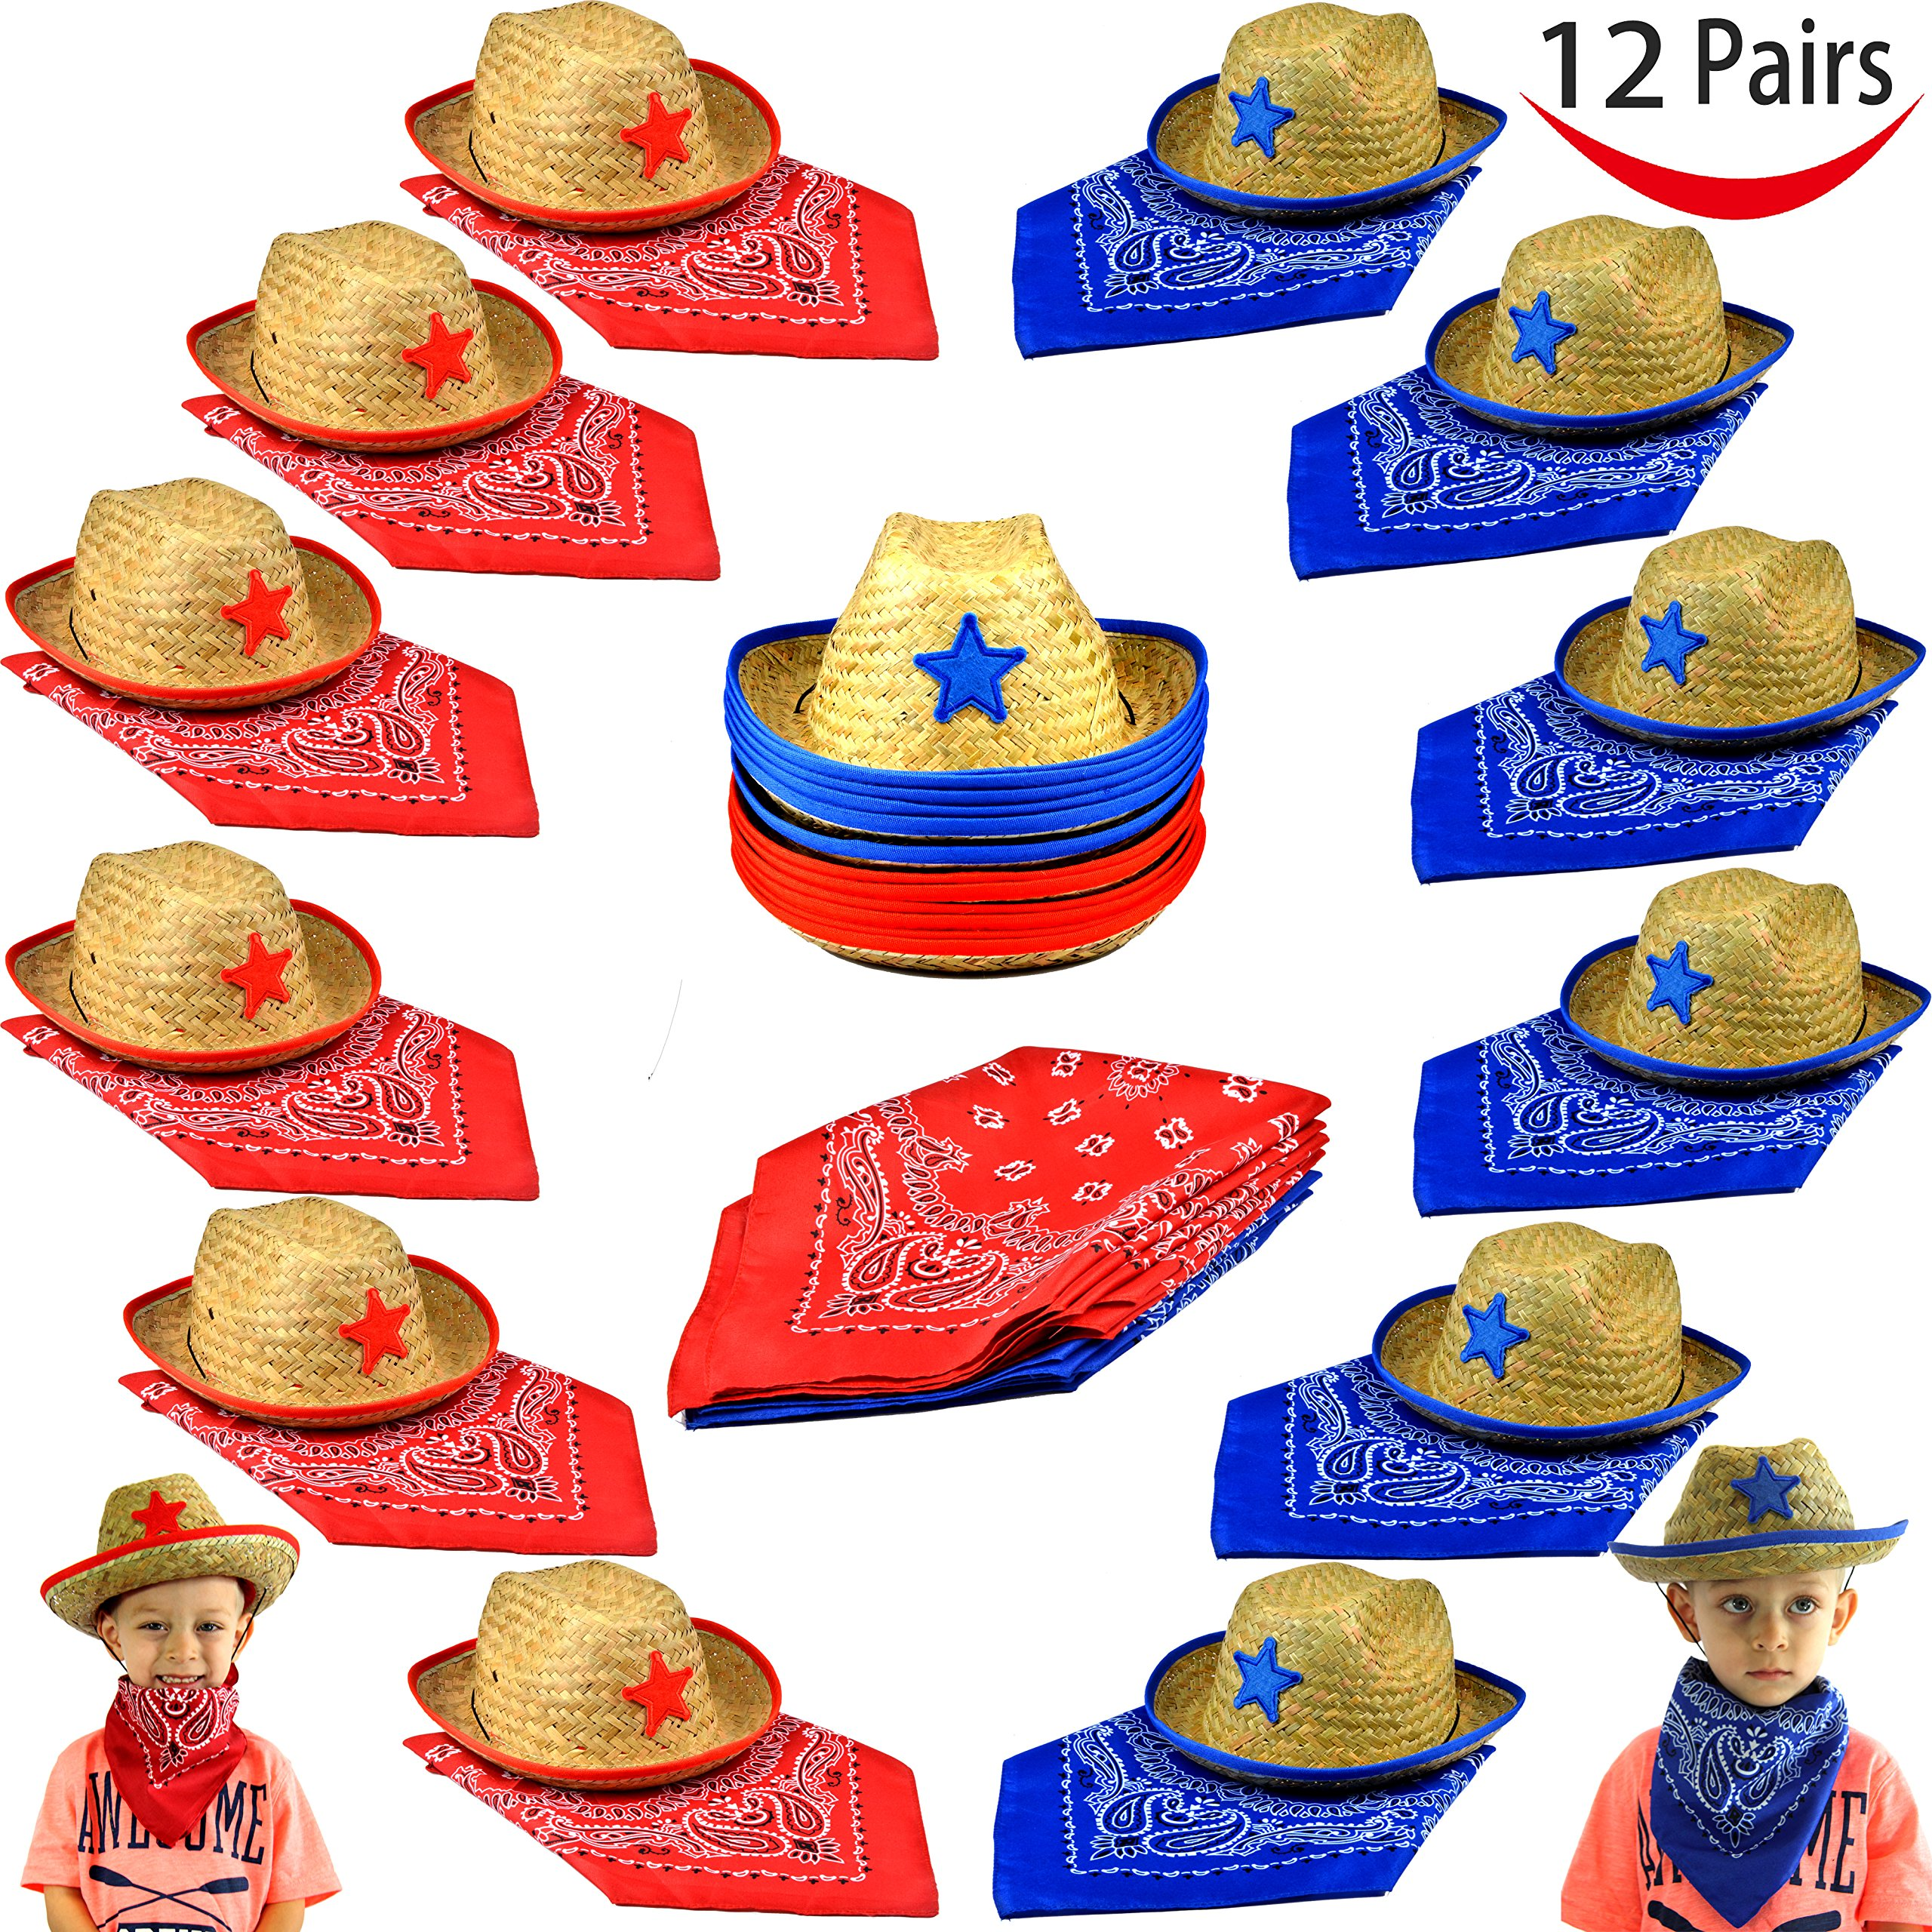 ef2817af083d9 Get Quotations · Pack of 12 Childs Straw Cowboy Hats with Cowboy Bandannas  (6 red   6 blue